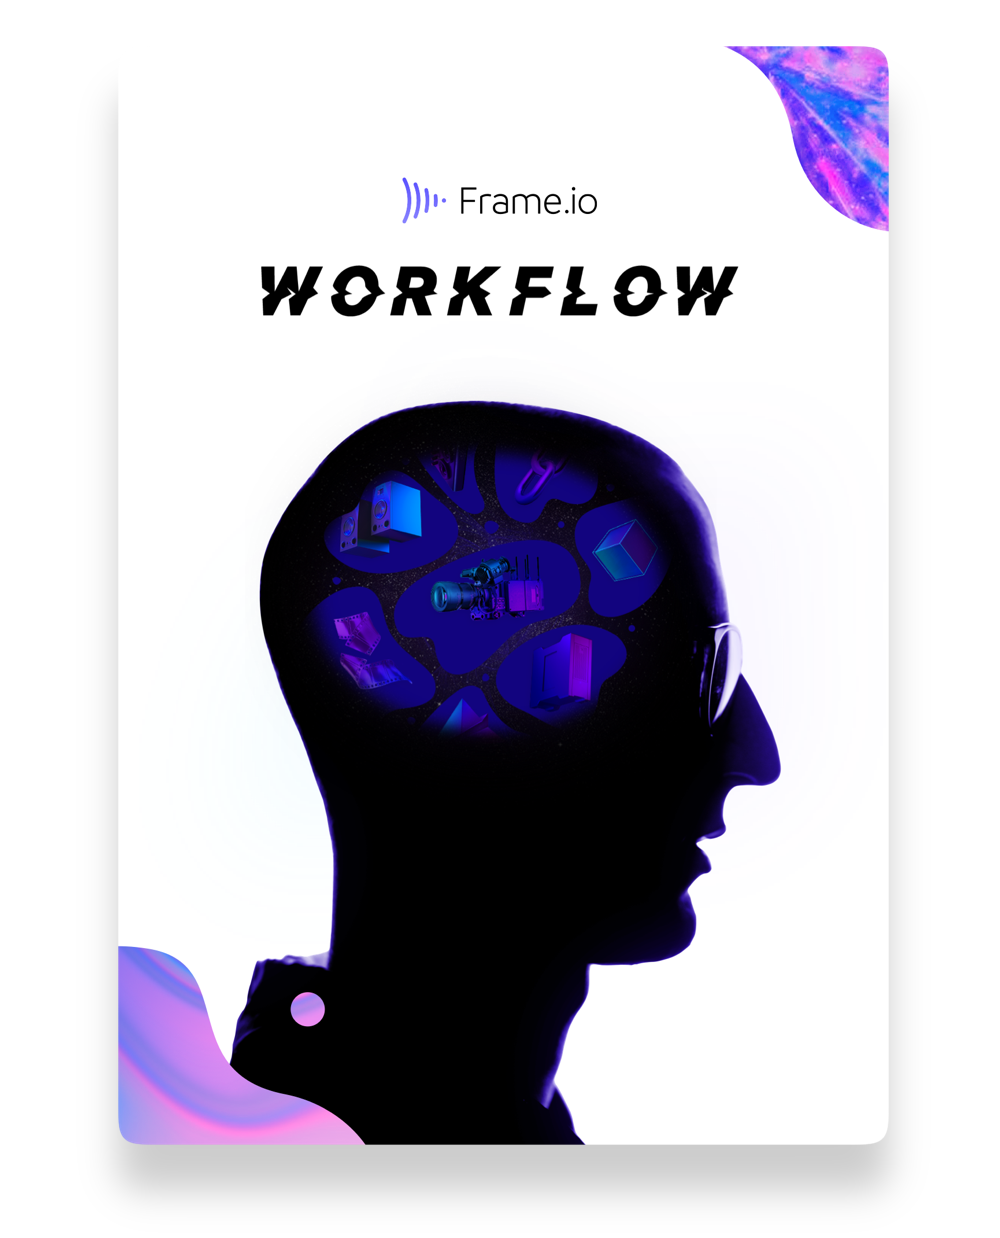 Workflow Guide Image 4.png